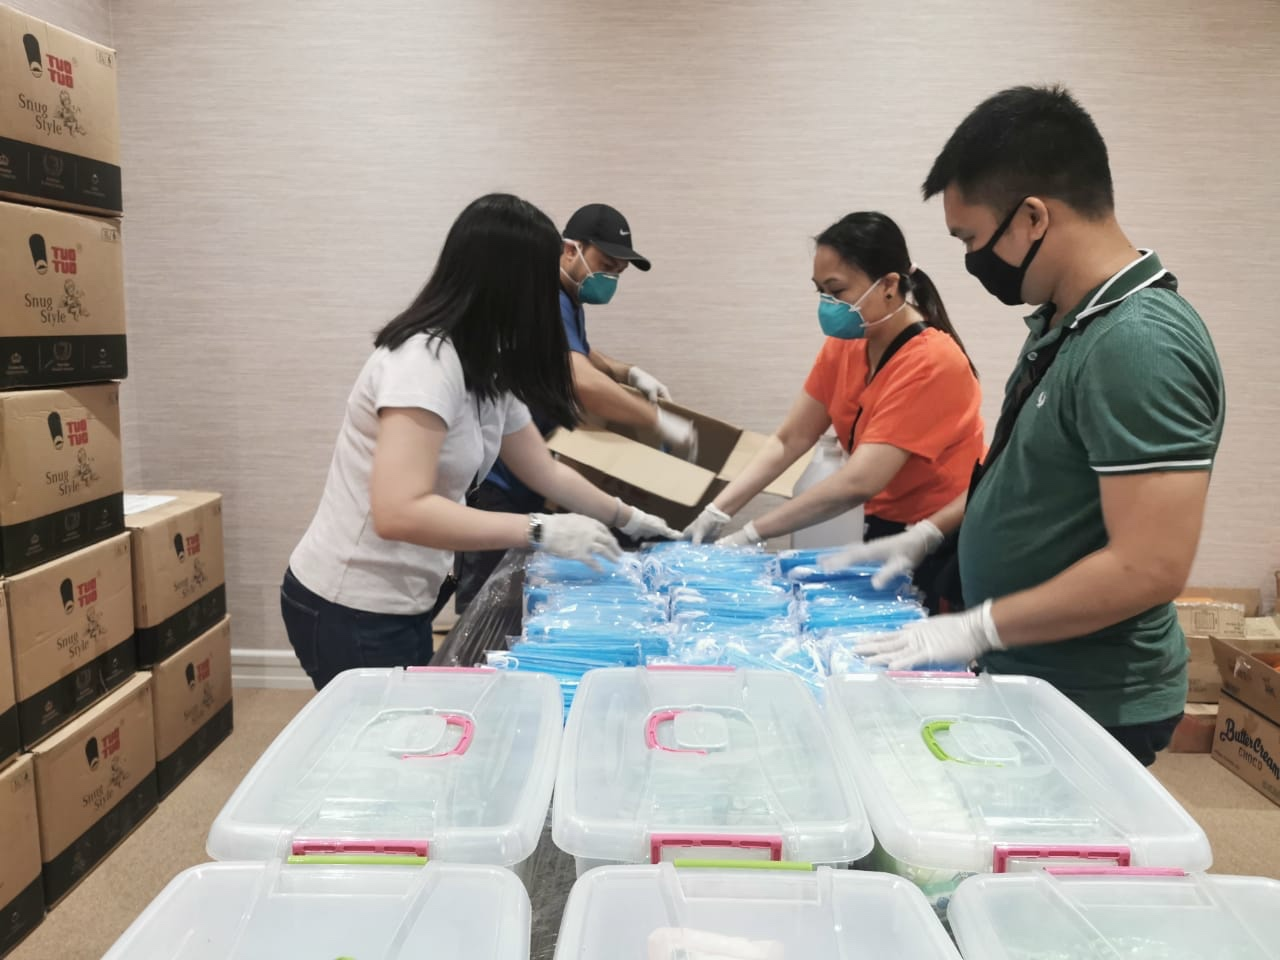 IMG b7047fbccda7ab04777e3f68b6ef5cb8 V - Las Piñas Rep. Camille Villar readies essential supplies for barangay health workers, military personnel fighting against spread of COVID-19